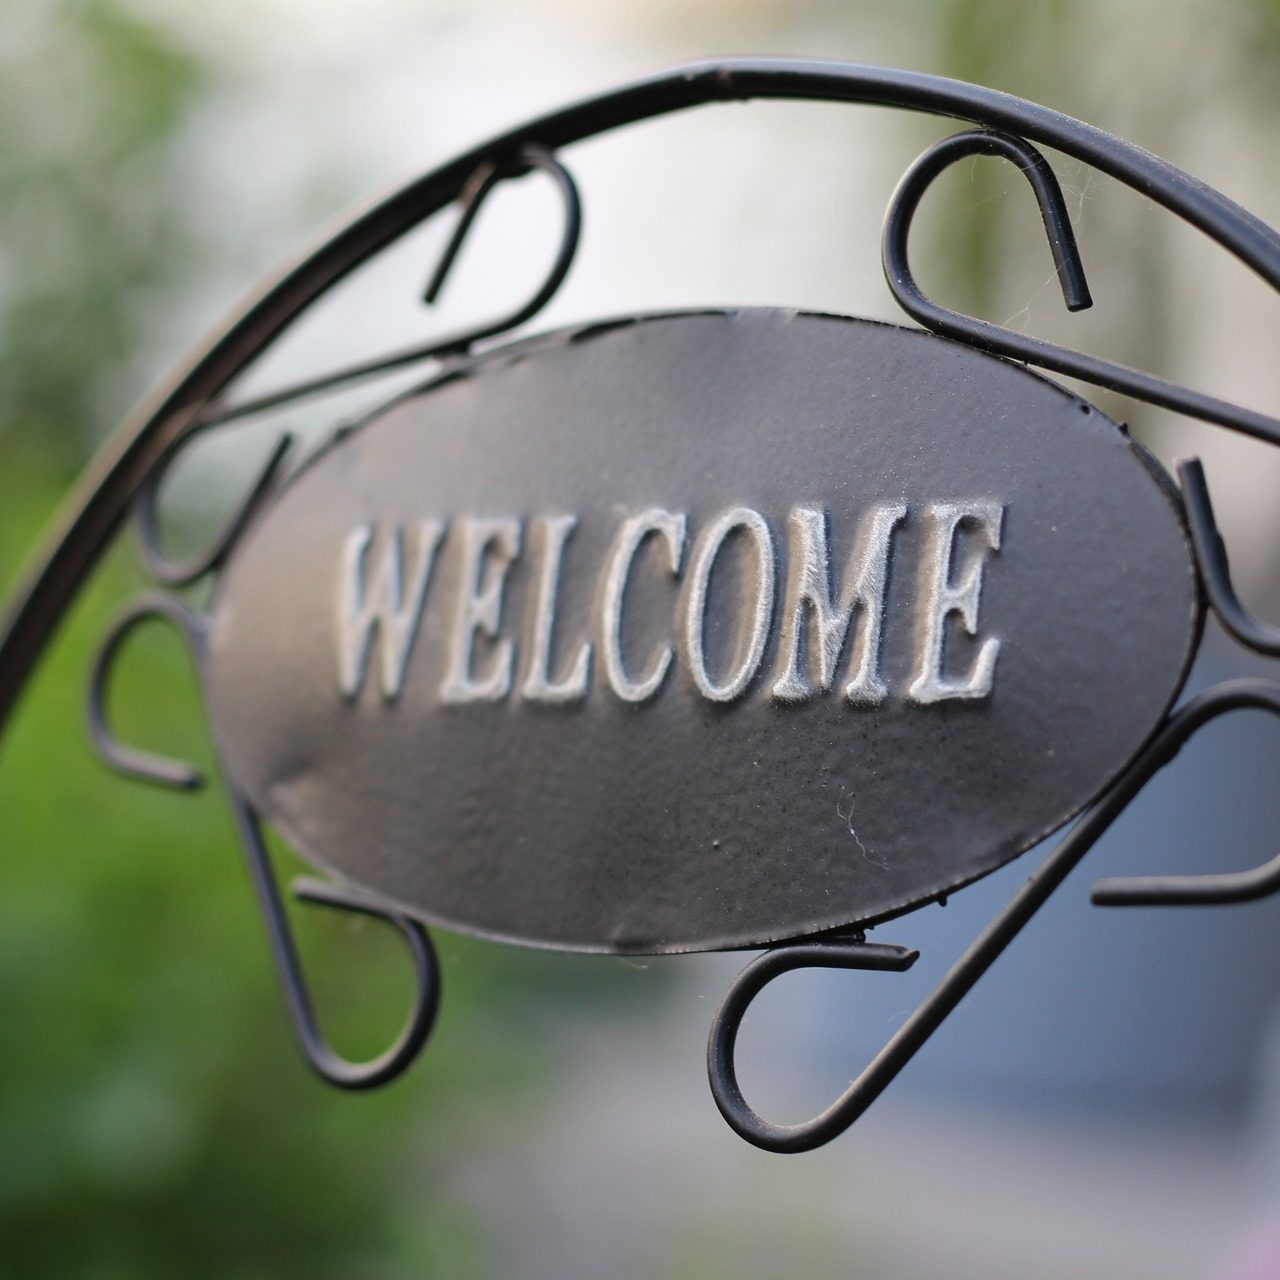 welcome-5305519_1920